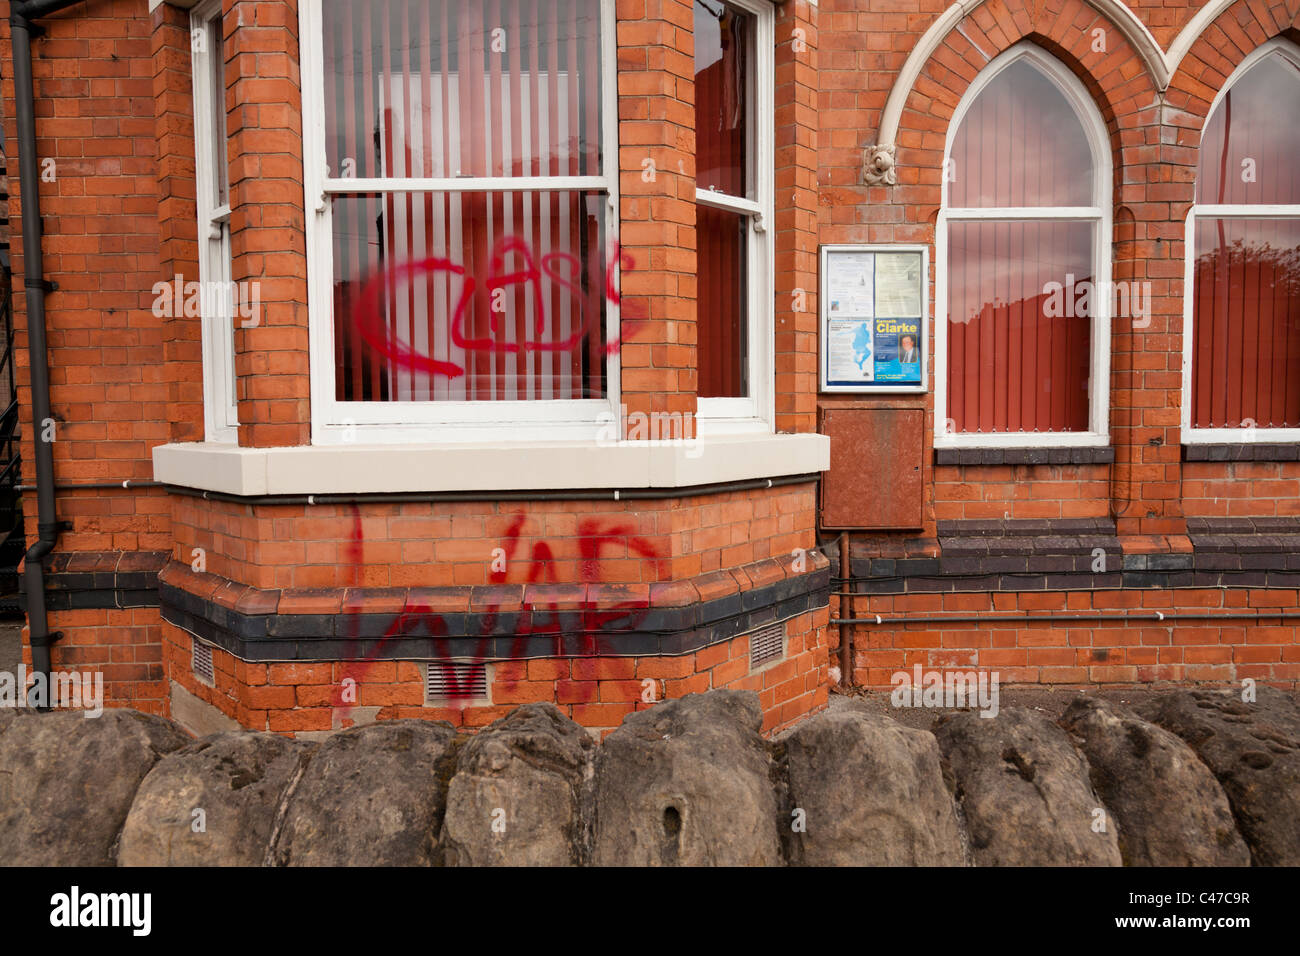 Rushcliffe Conservative Association Headquarters with political graffiti across the front of the building - Stock Image